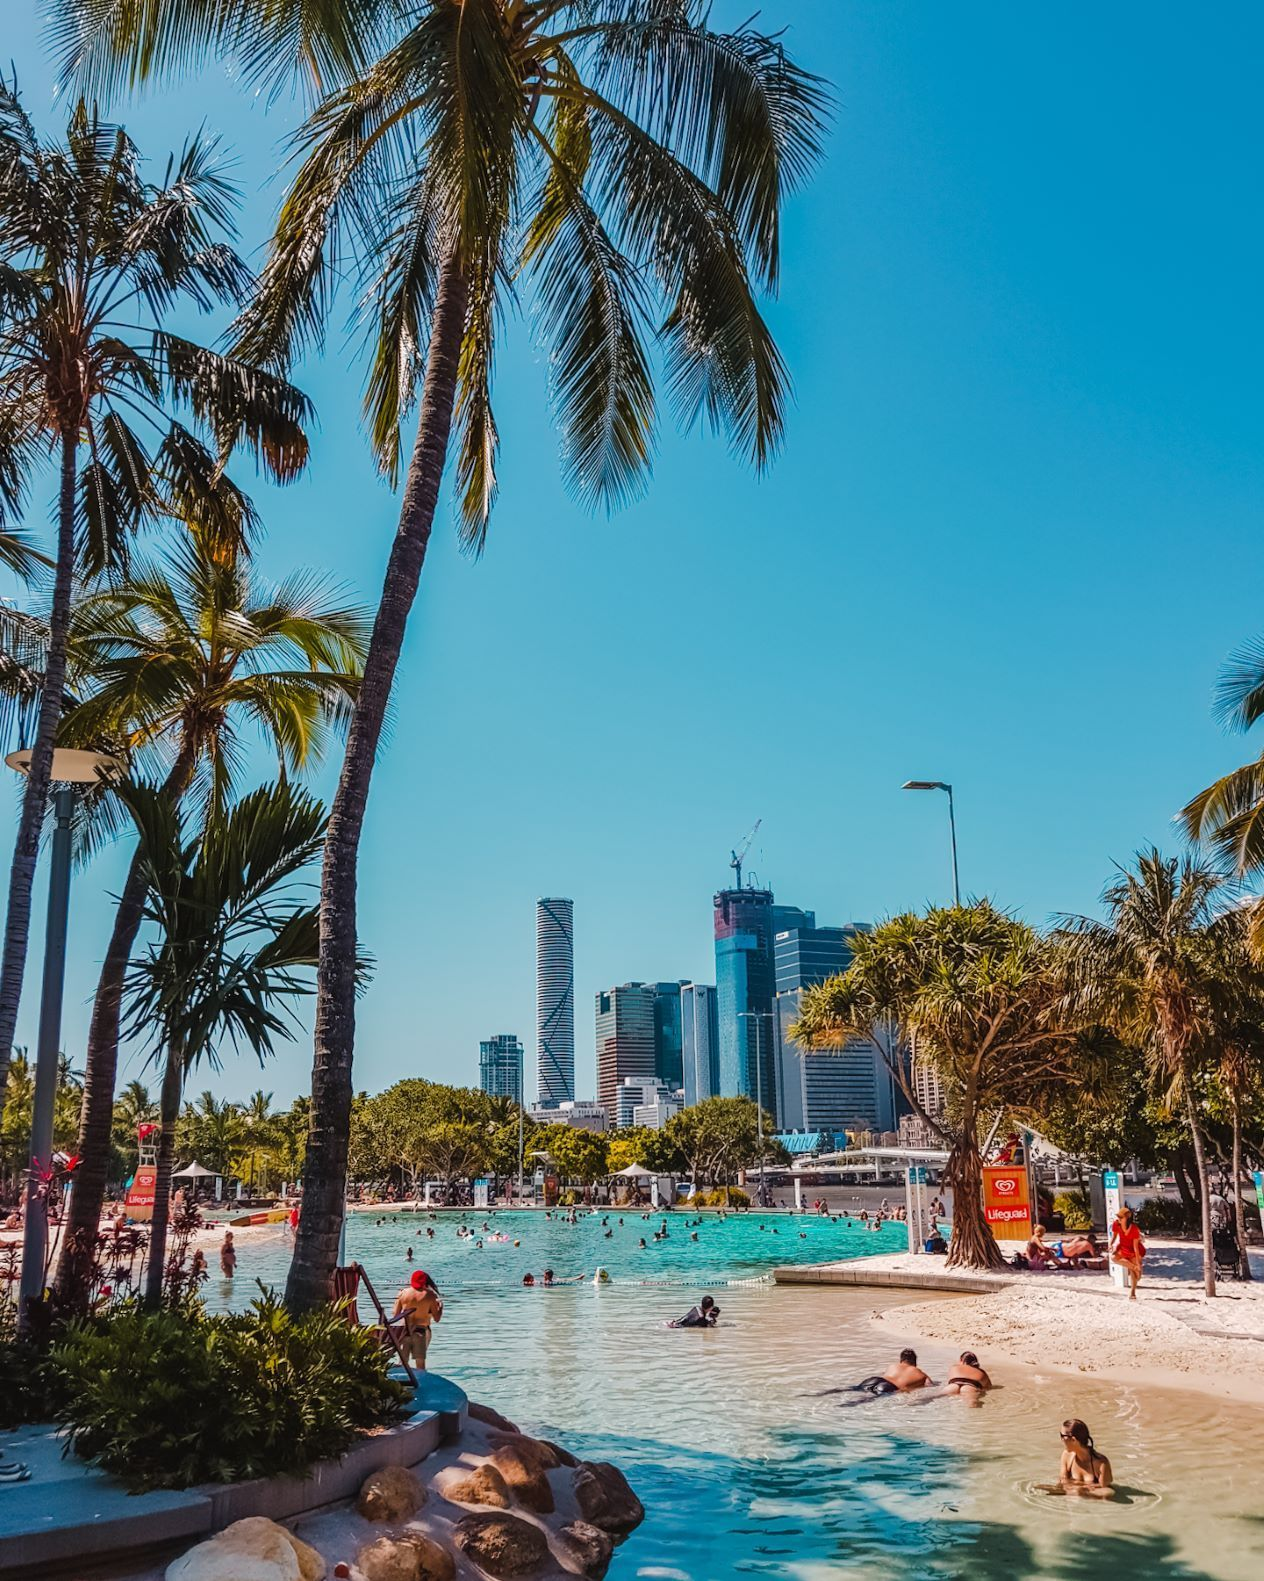 30+ fun things to do in Brisbane. A former local's guide that includes where to eat and drink in Brisbane, as well as cheap accommodation in Brisbane.  free things to do in Brisbane   where to stay in Brisbane   Brisbane restaurants   Brisbane travel tips   places to visit in Brisbane   brisbane attractions   what to do in Brisbane   Australia travel destinations   Queensland travel destinations   #Brisbane #Queensland #Australia